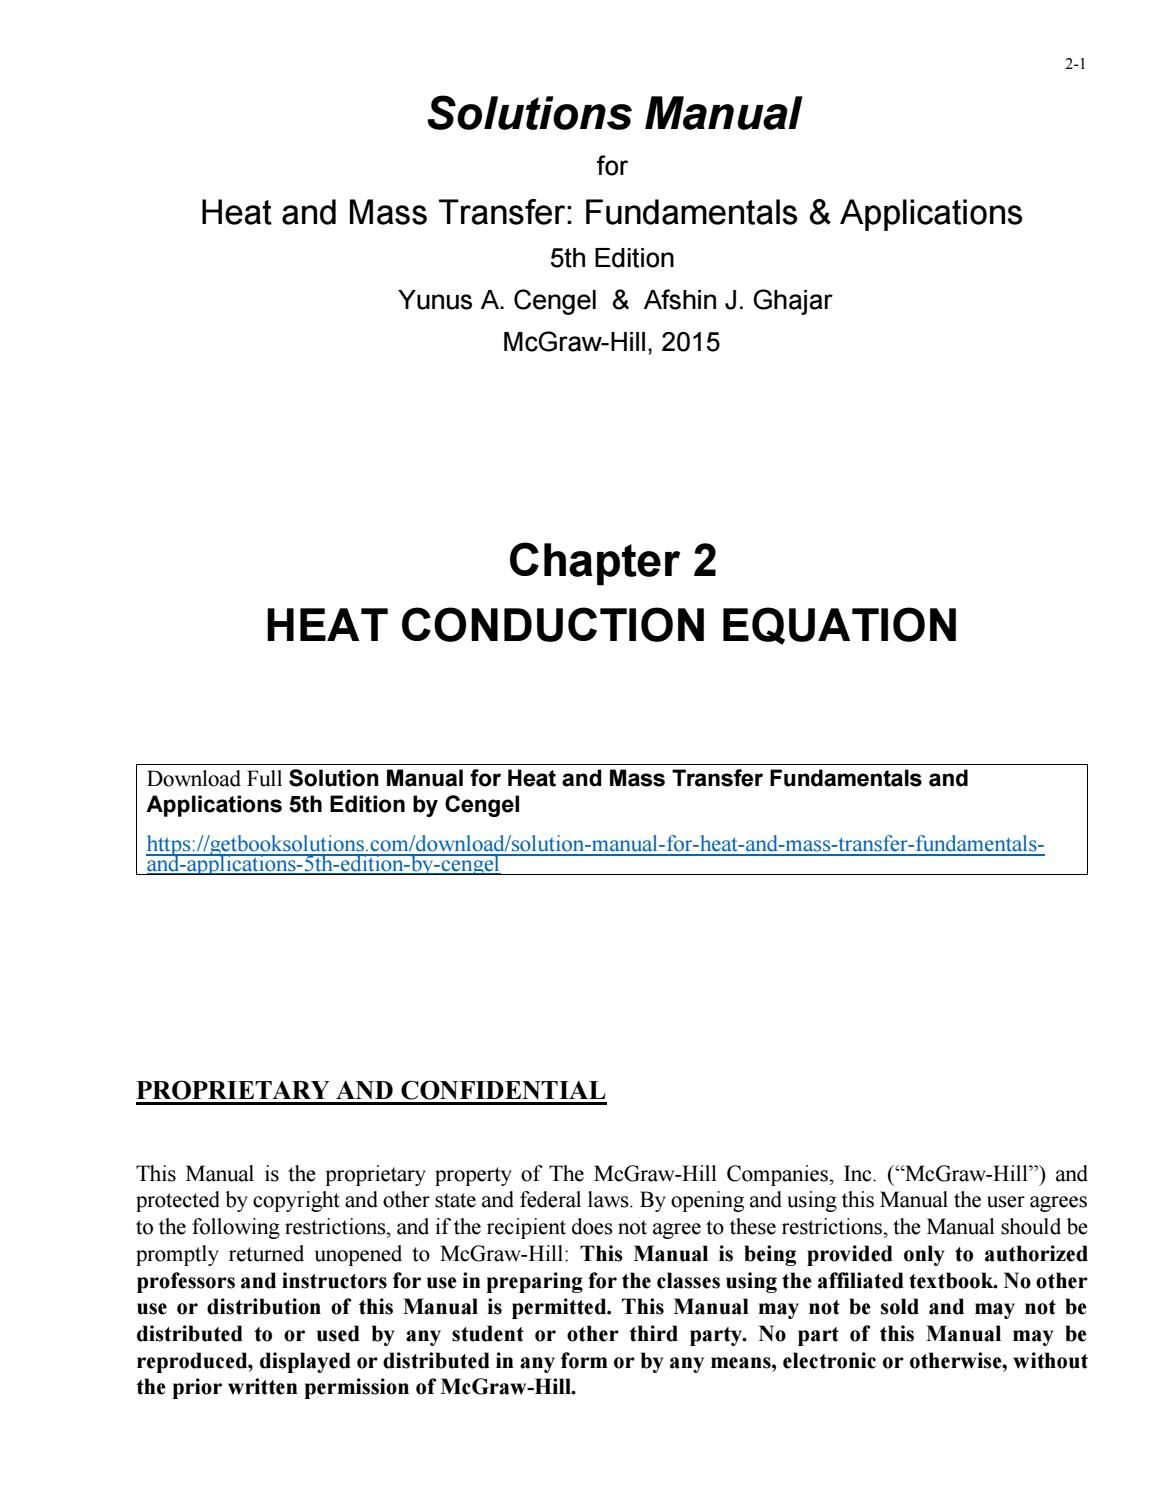 Solution manual for heat and mass transfer fundamentals and applications 5th  edition by cengel